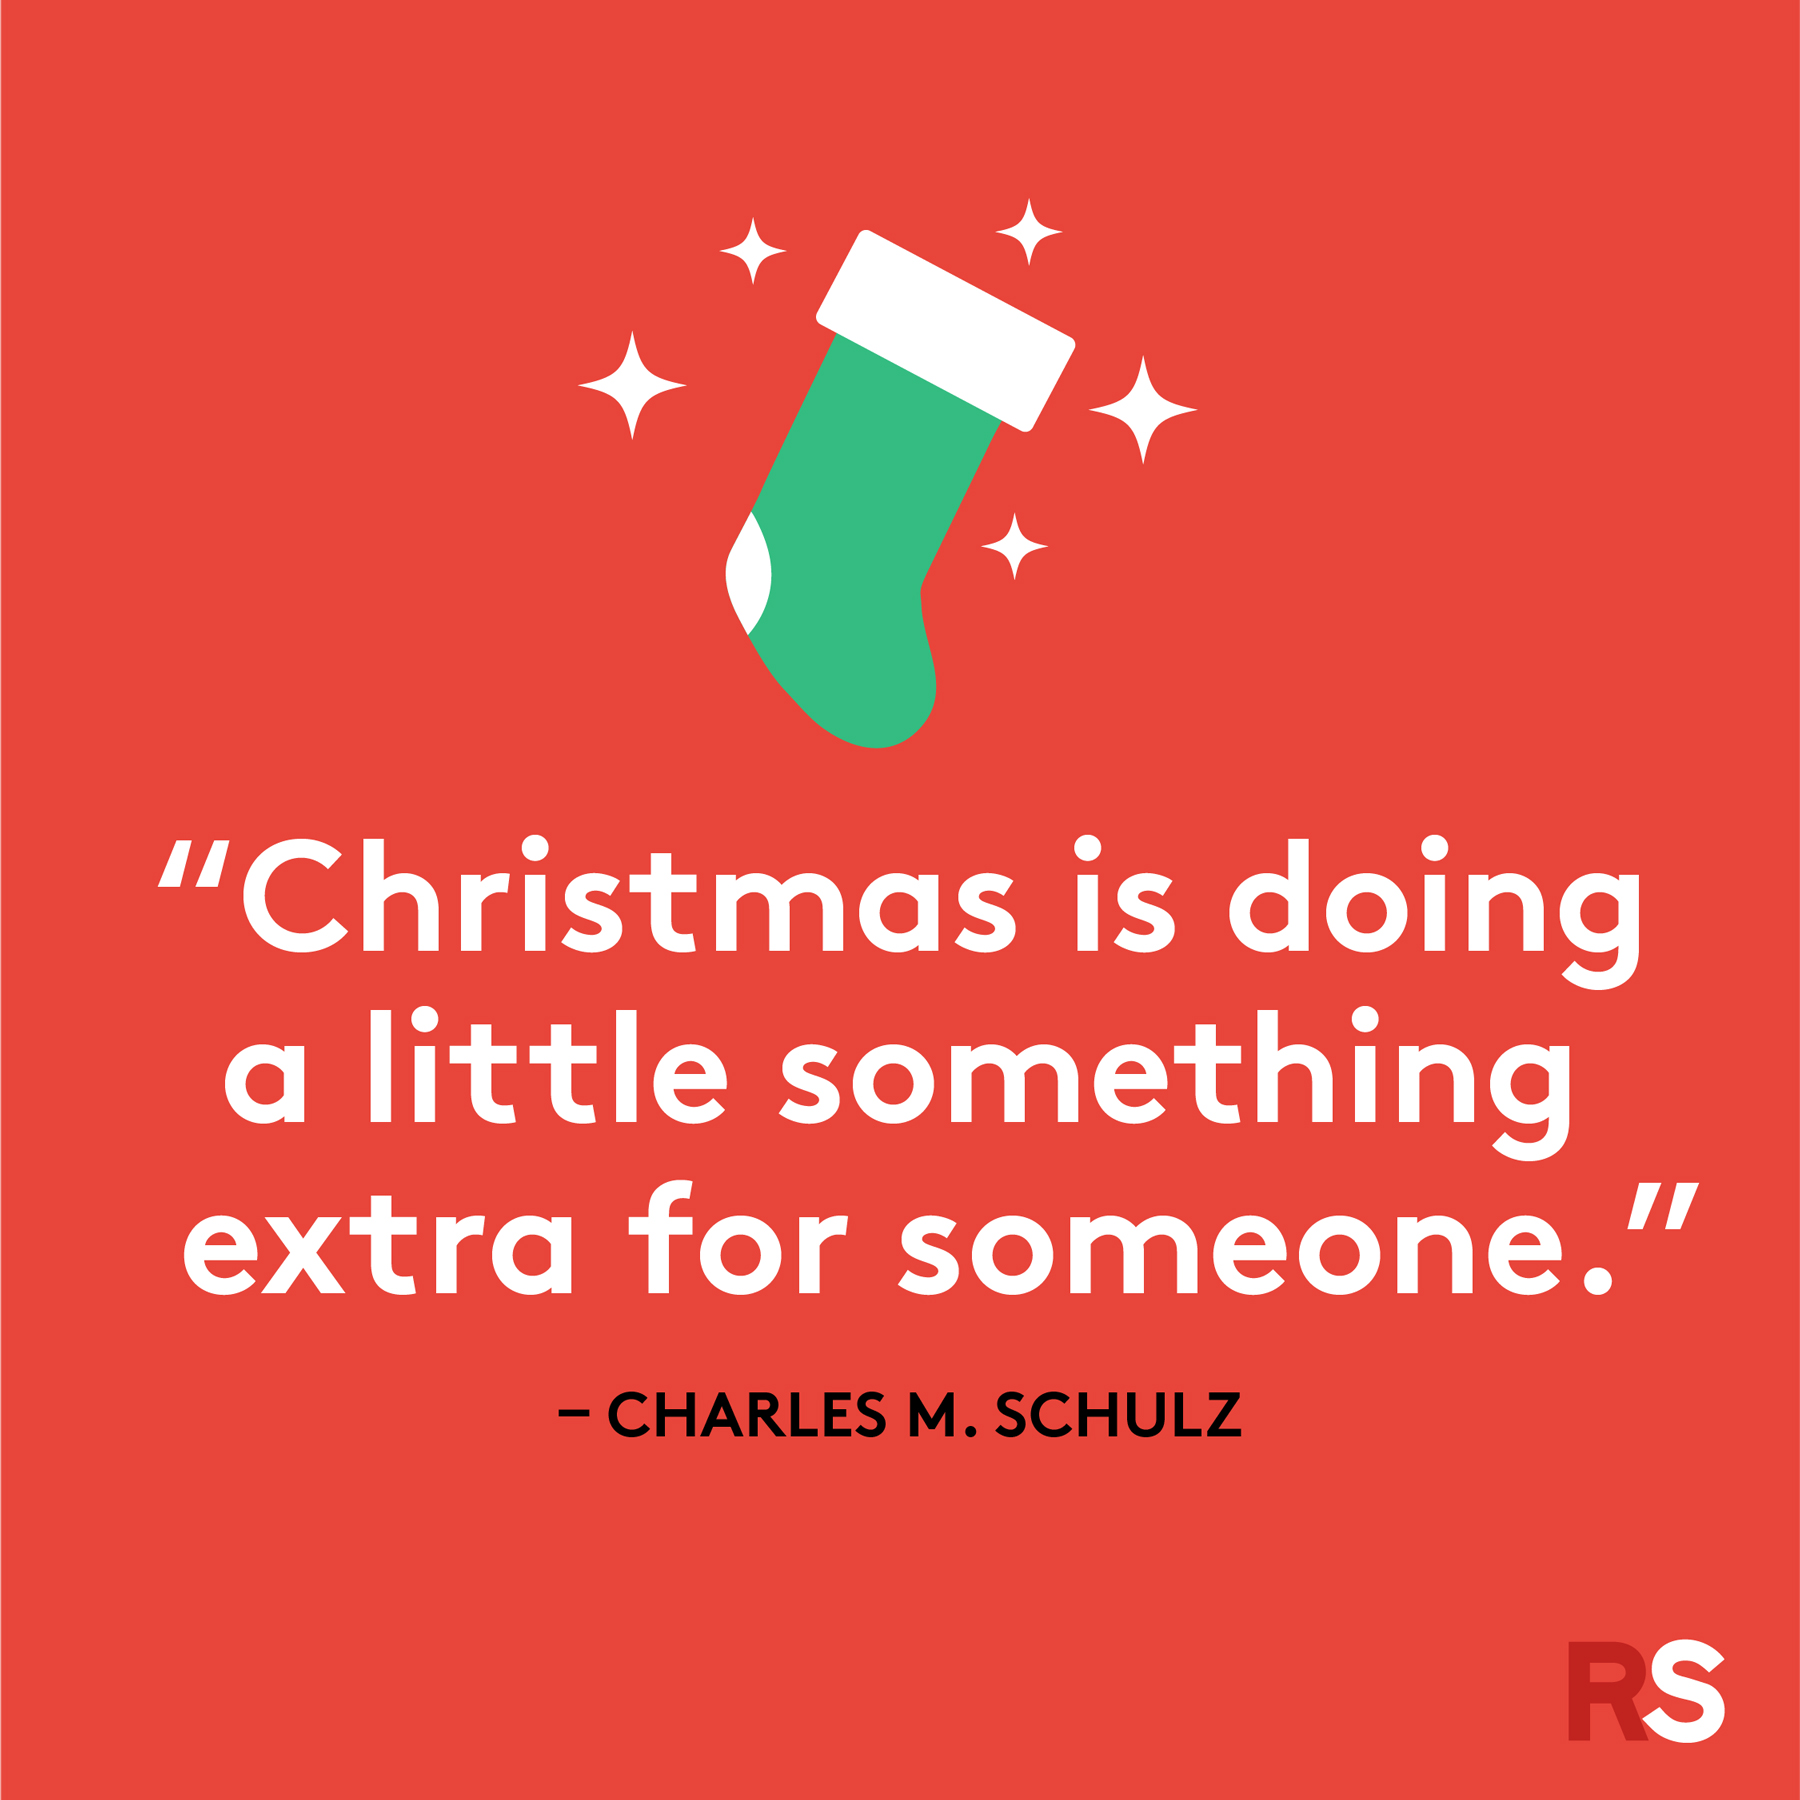 Best Christmas quotes - Charles M. Schulz